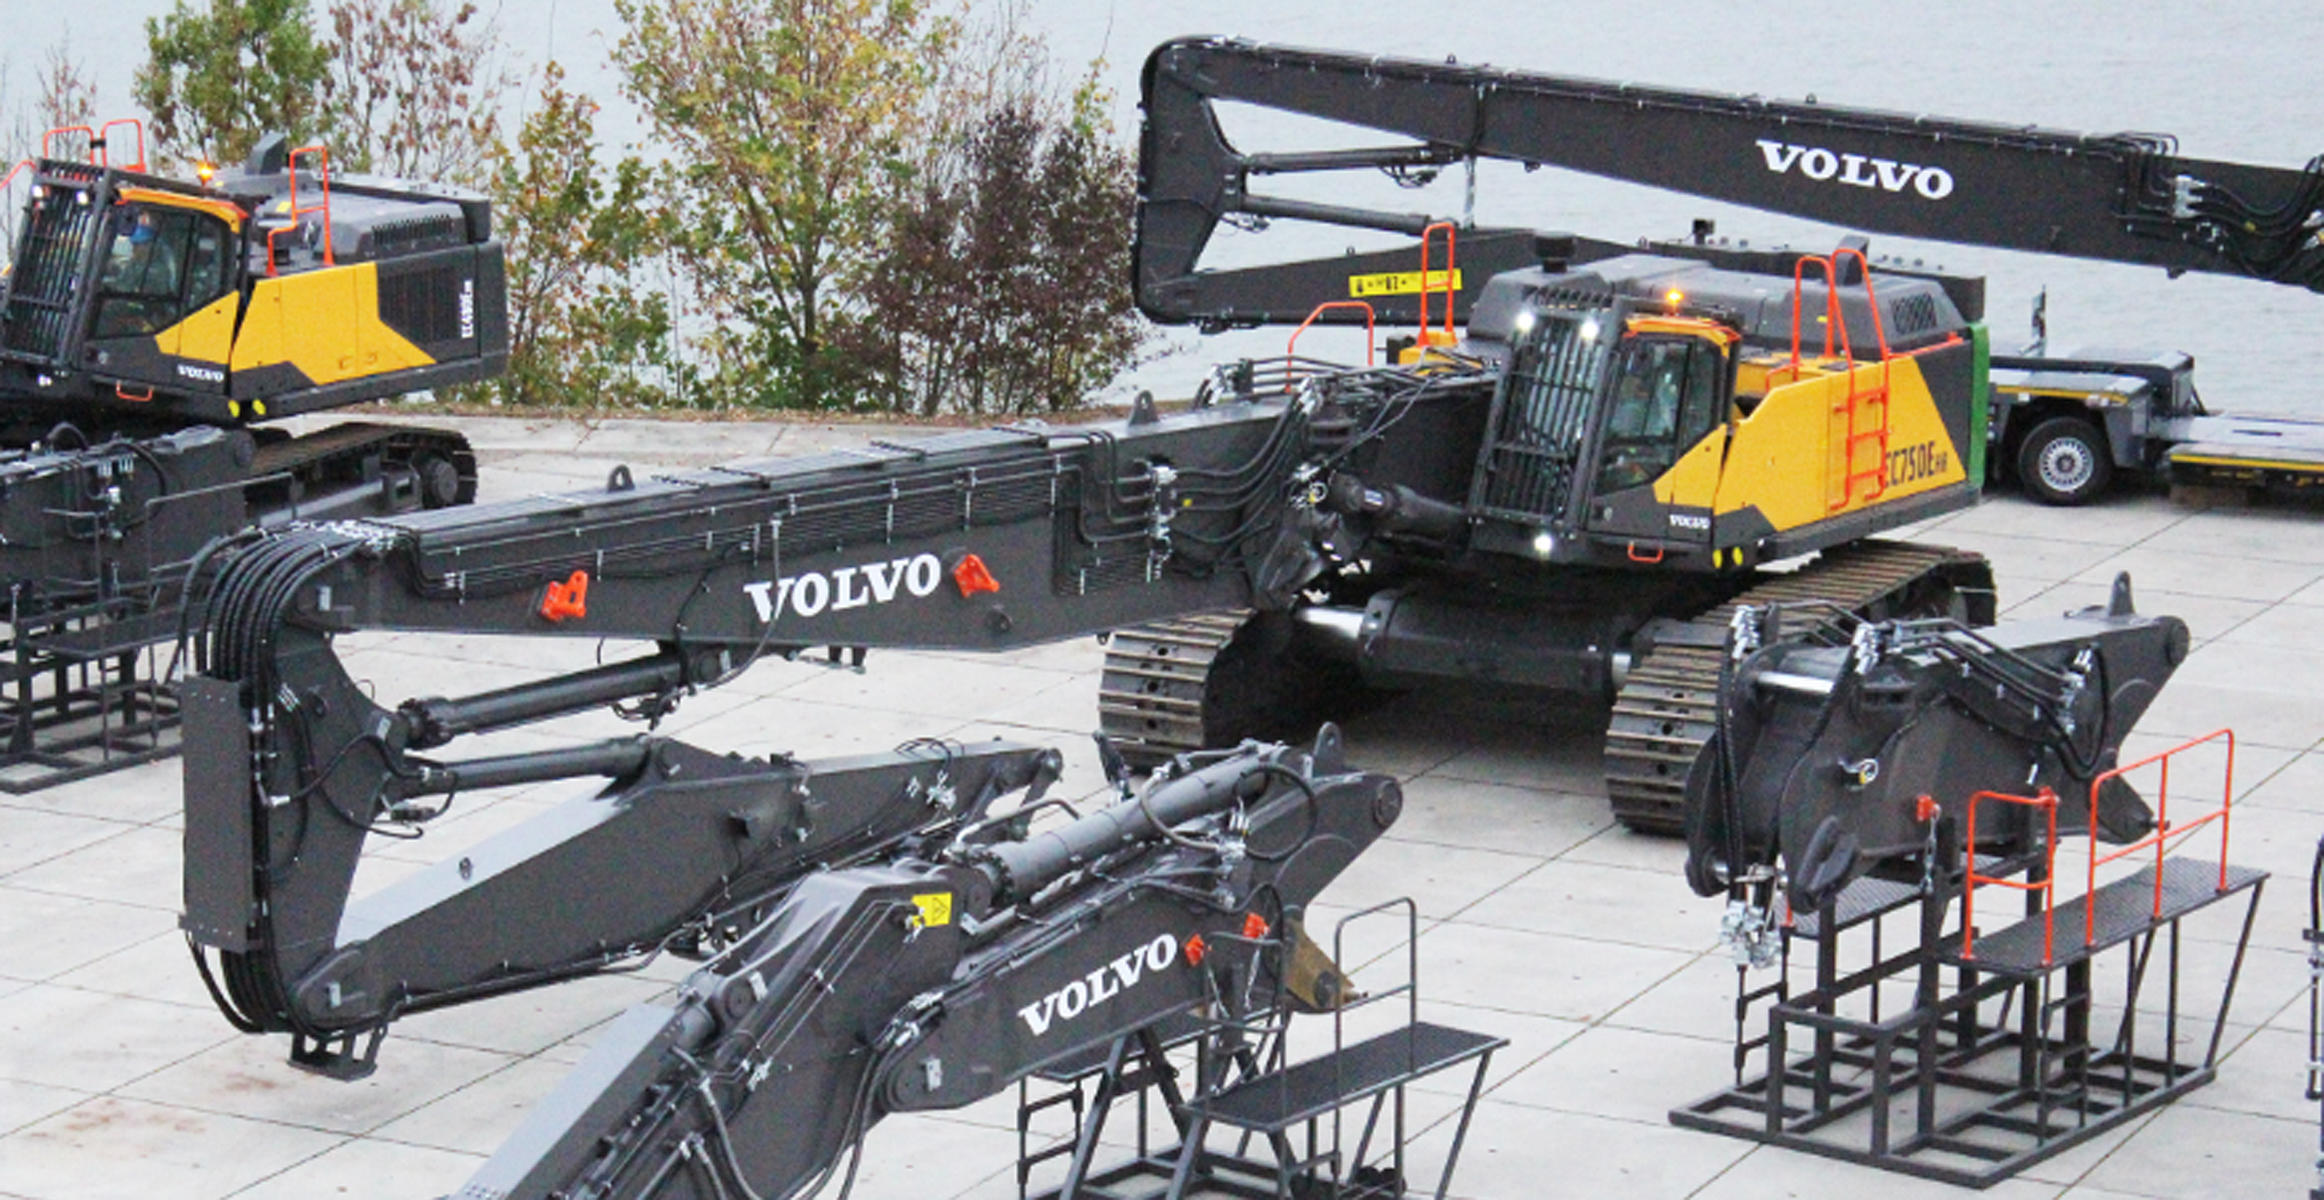 The first Volvo EC750E HR demolition excavator together with its boom sets